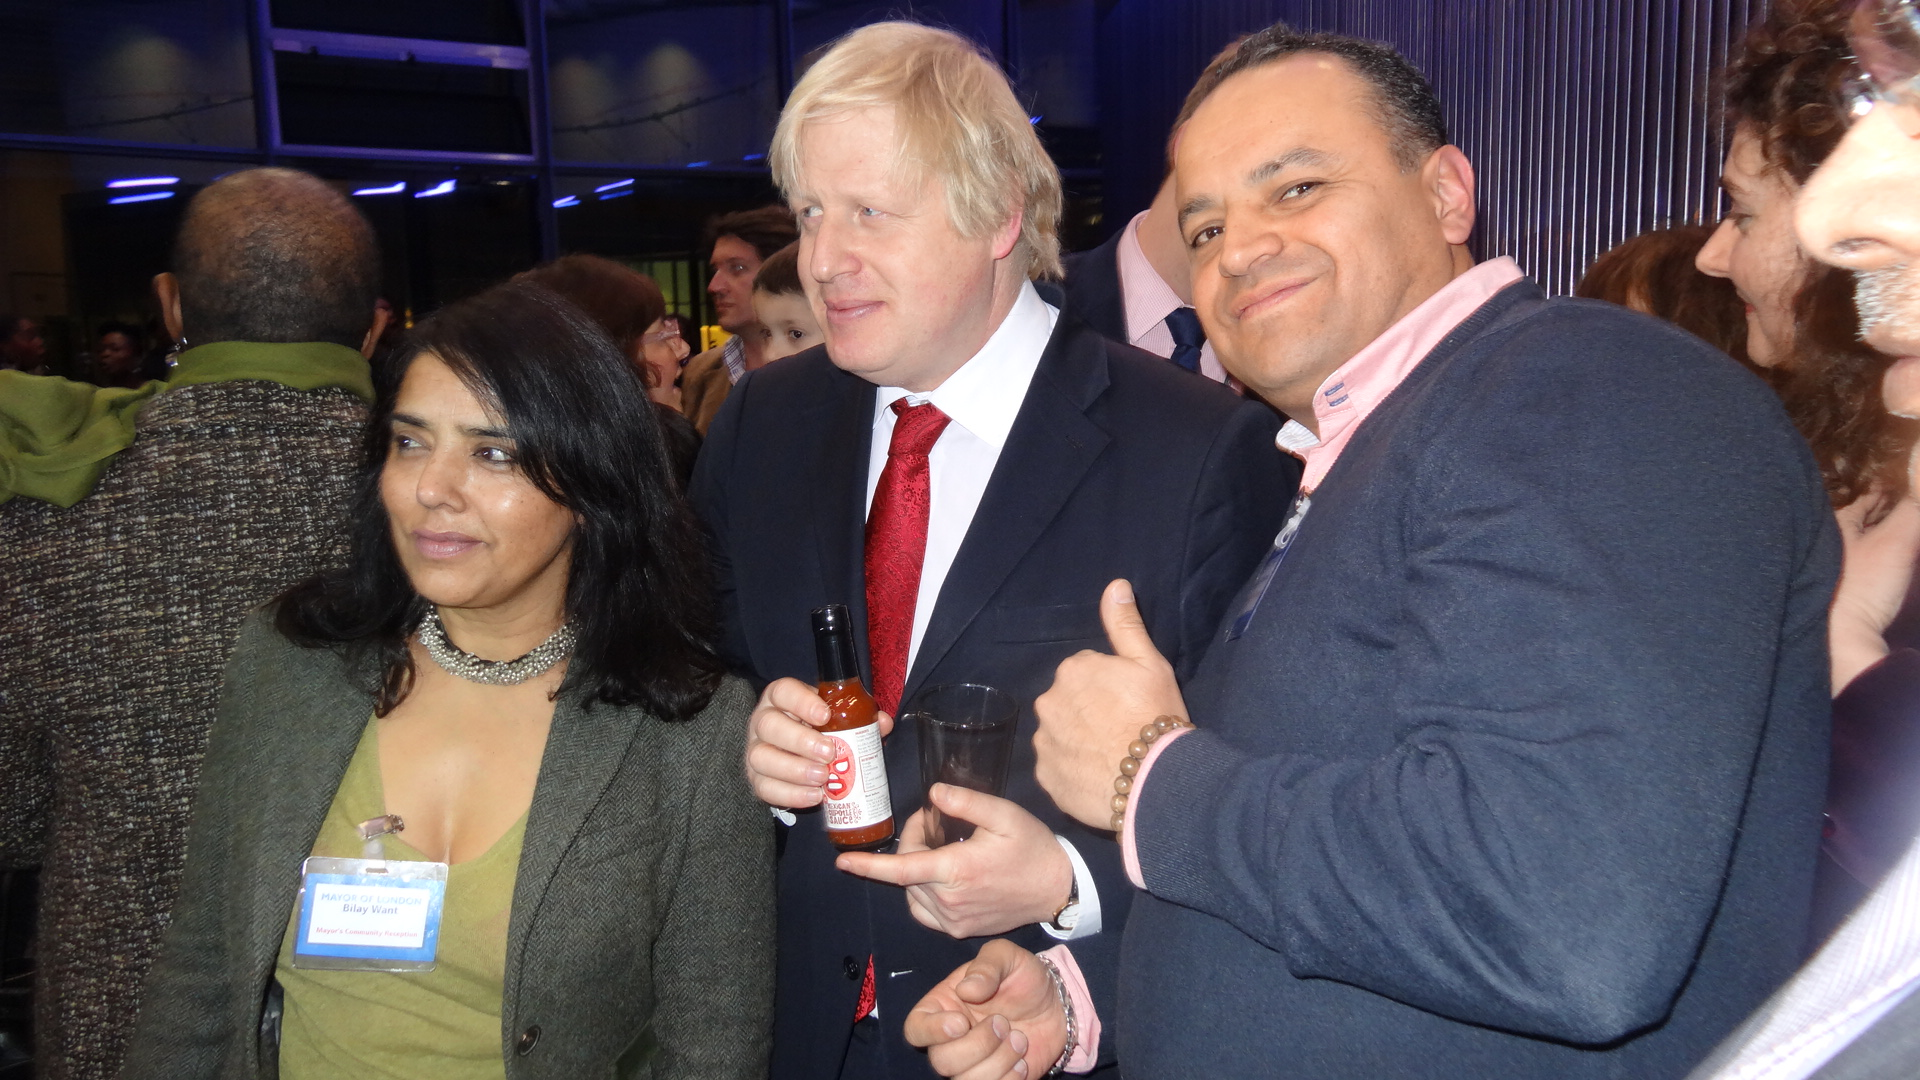 Mayor of London loves Kankun sauce!